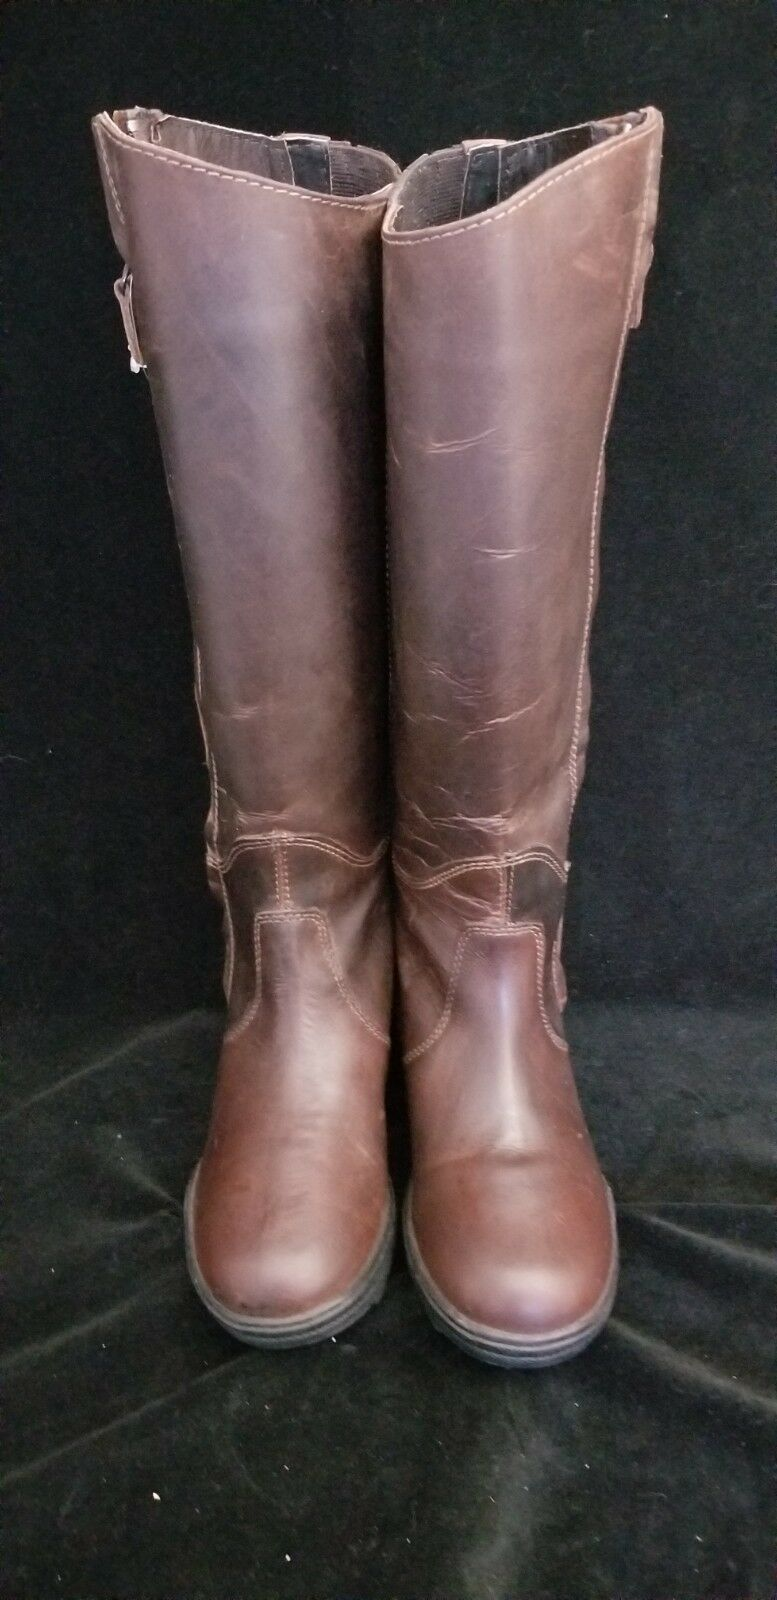 NEW Solstice Waterproof Leather Riding  Boots by SMARTPAK 37 US 6 NEW  save up to 30-50% off